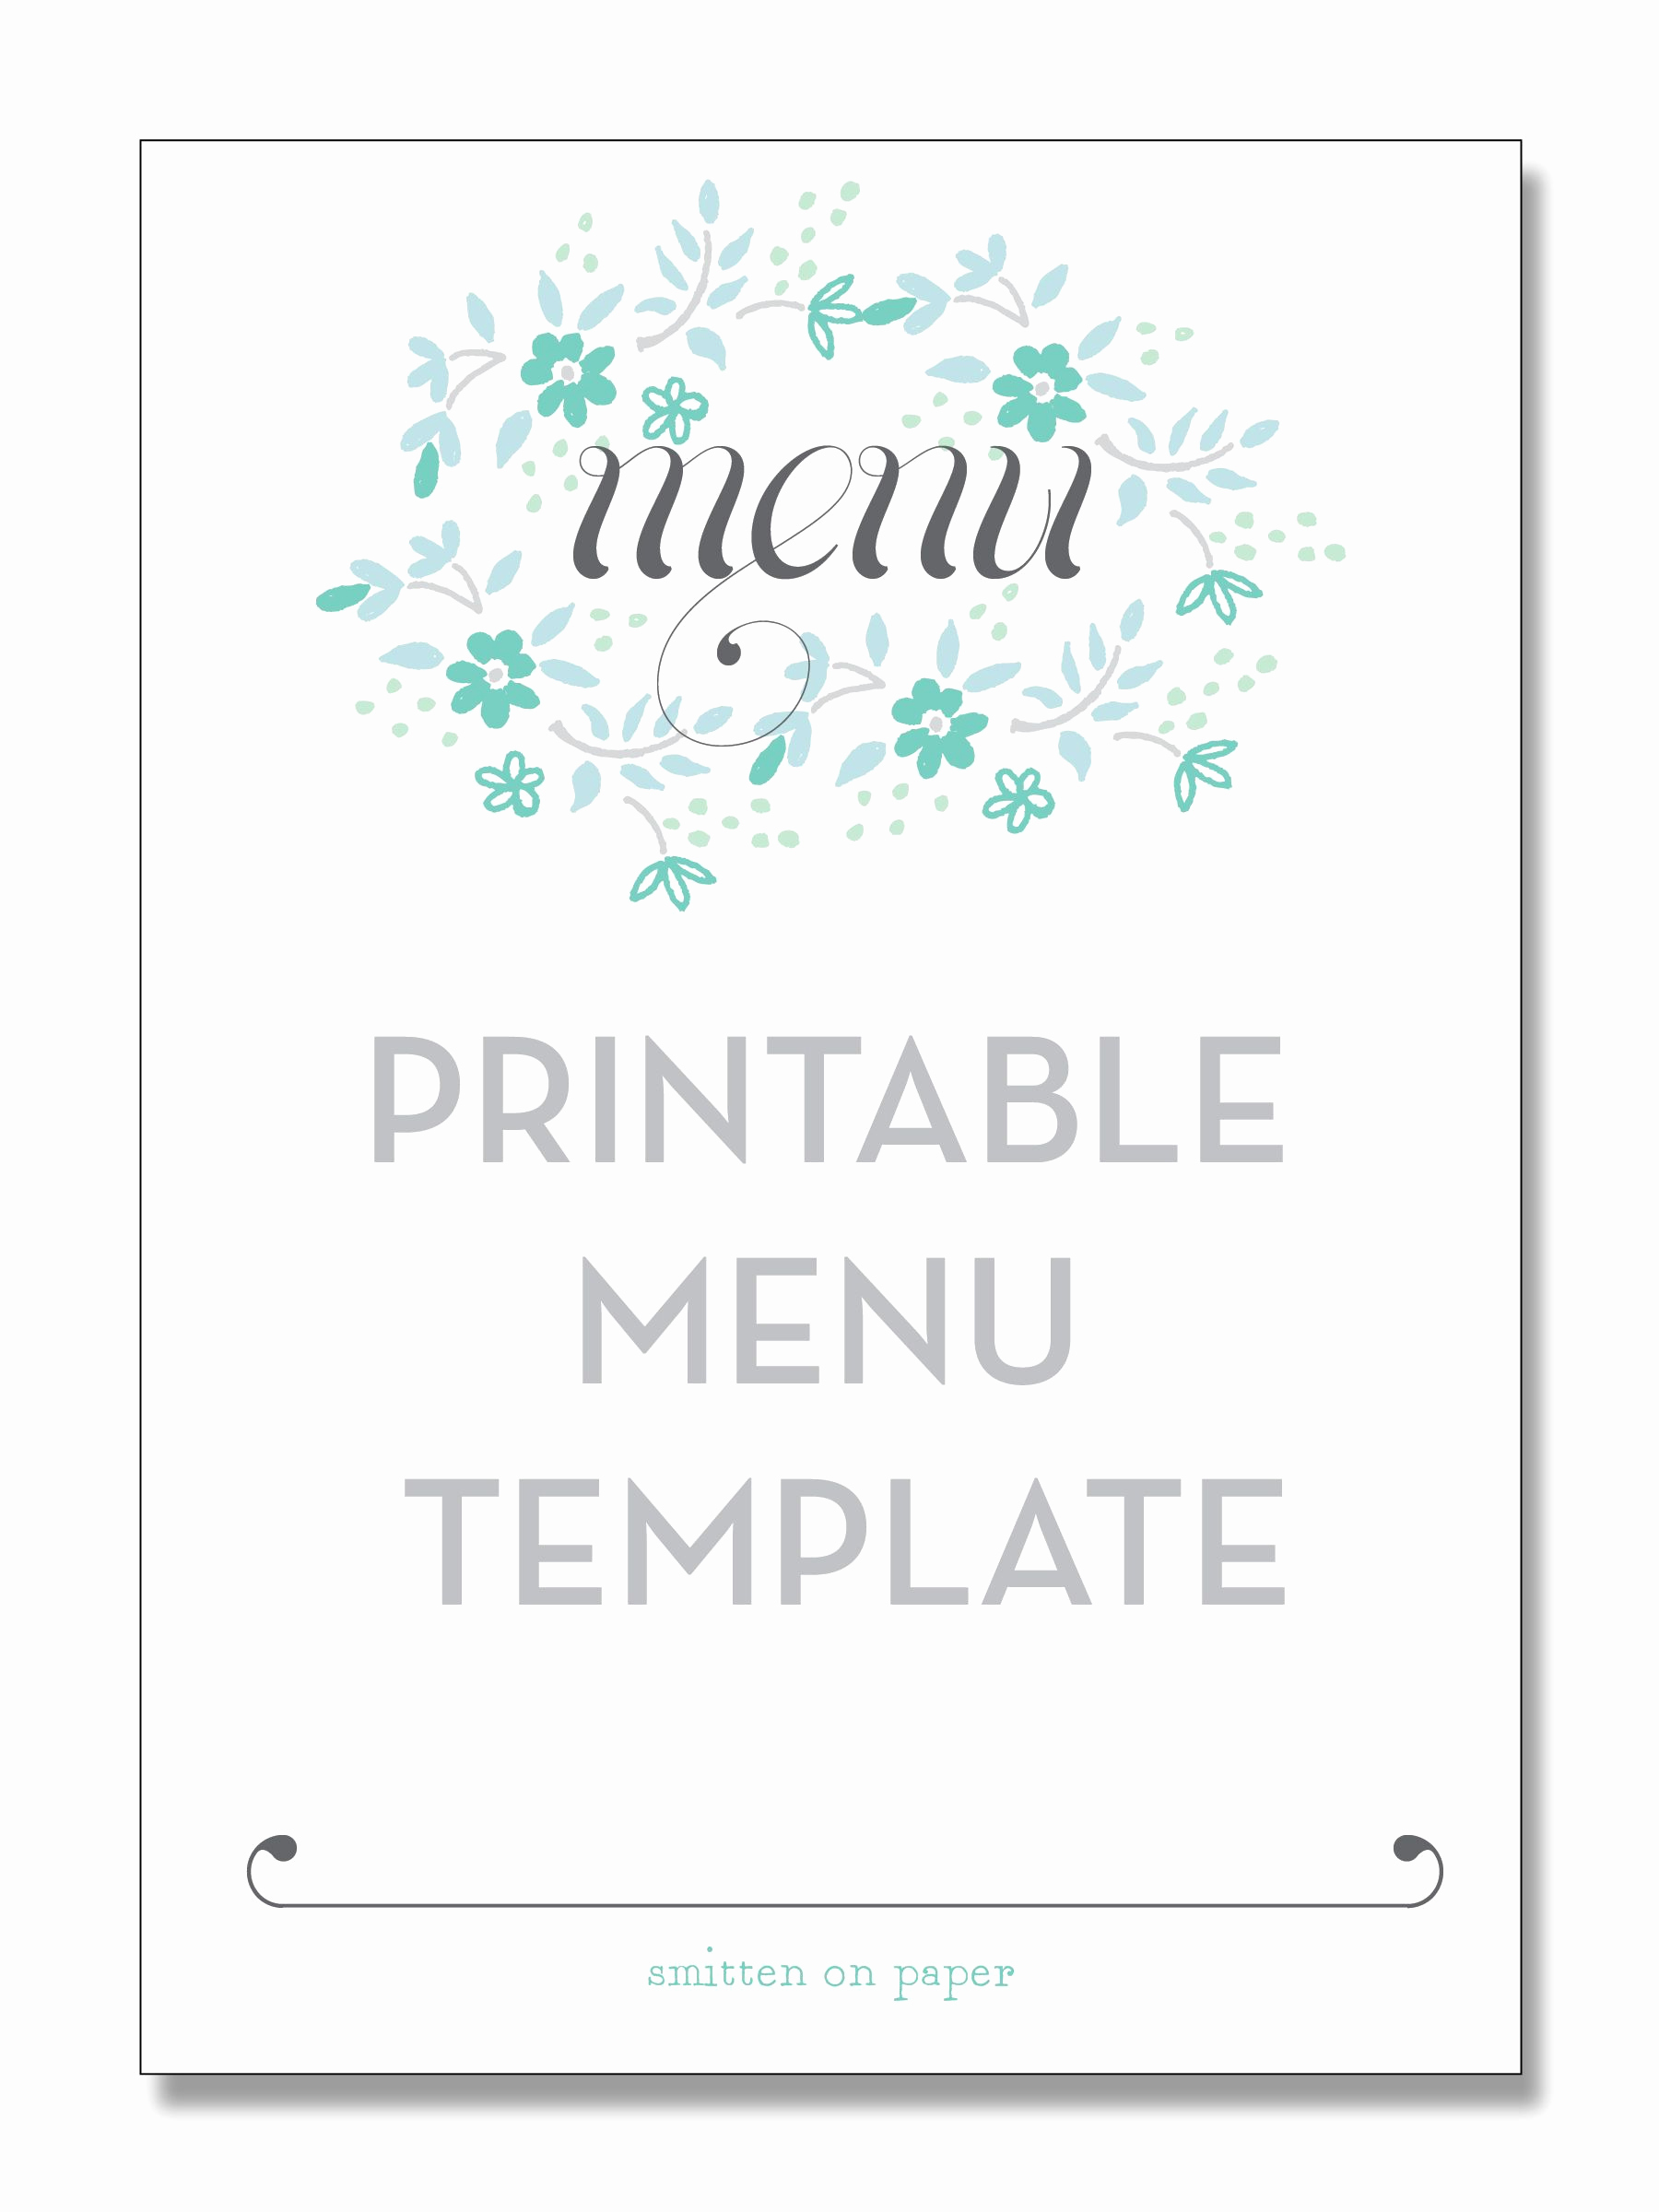 Dinner Menu Template Free Fresh Freebie Friday Printable Menu